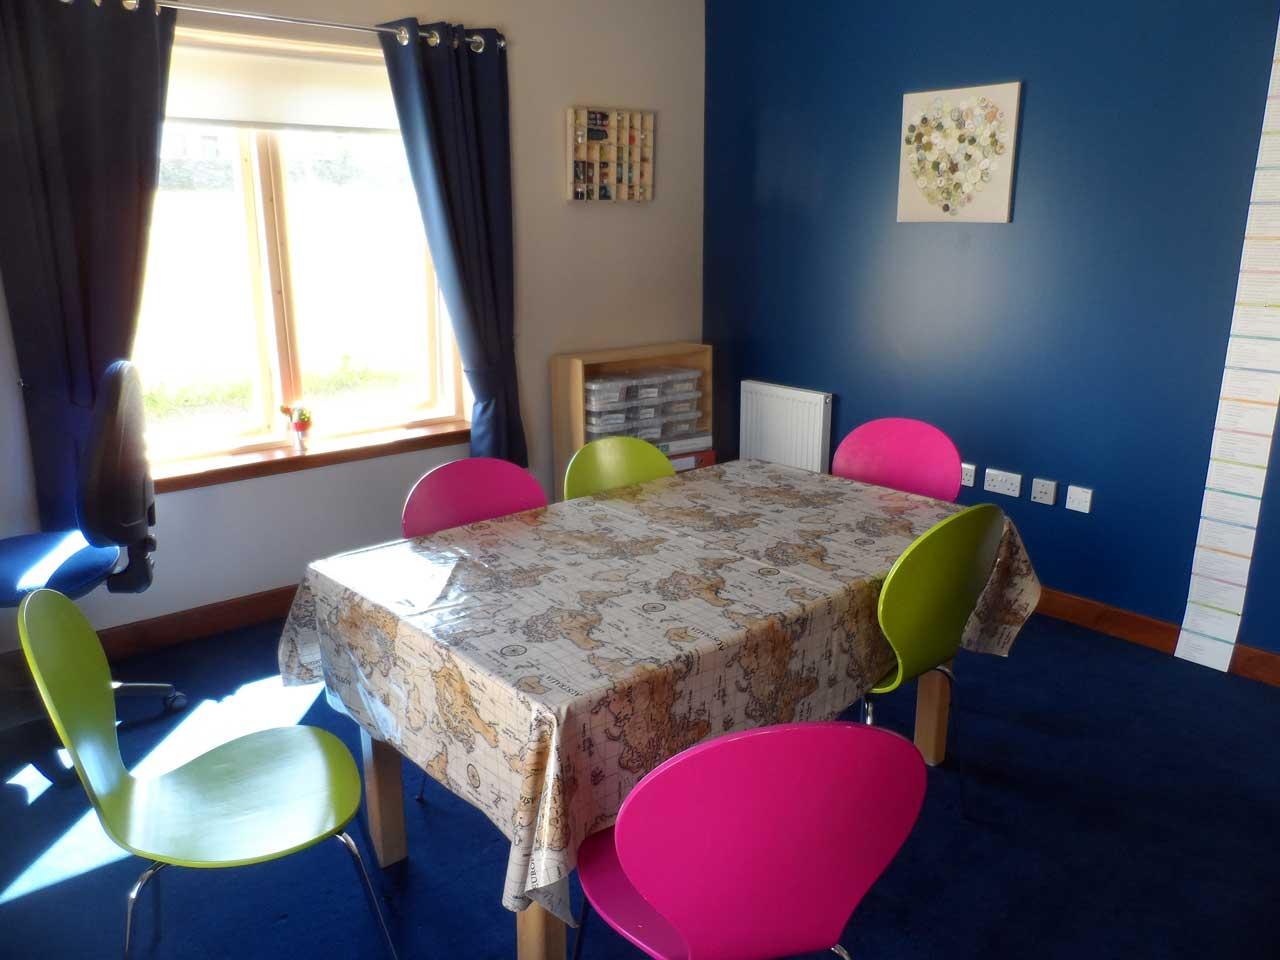 Photo: New Children's Home In Wick Opened 25 June 2014